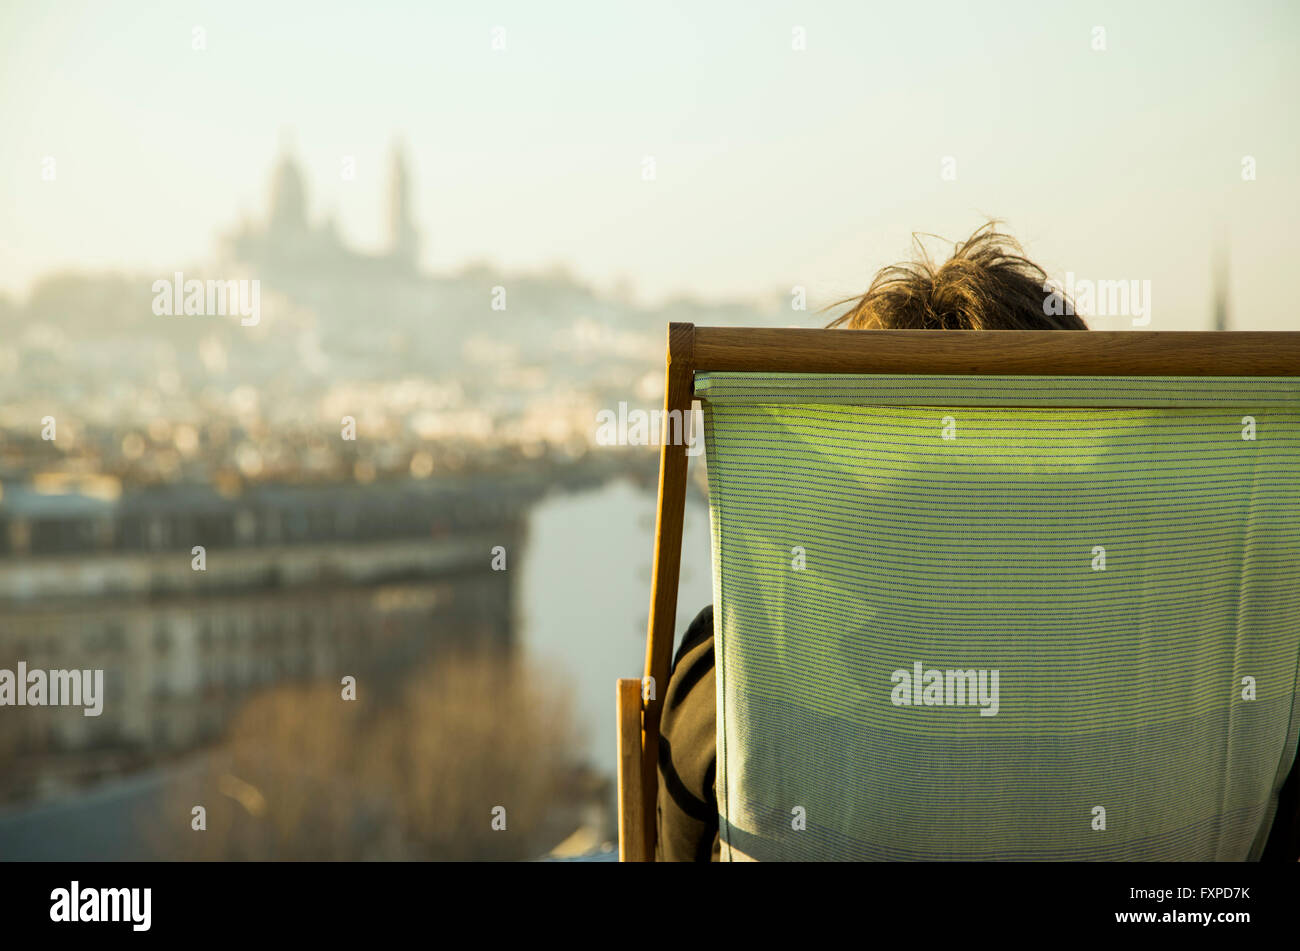 Person sitting in deckchair, looking at view of city - Stock Image